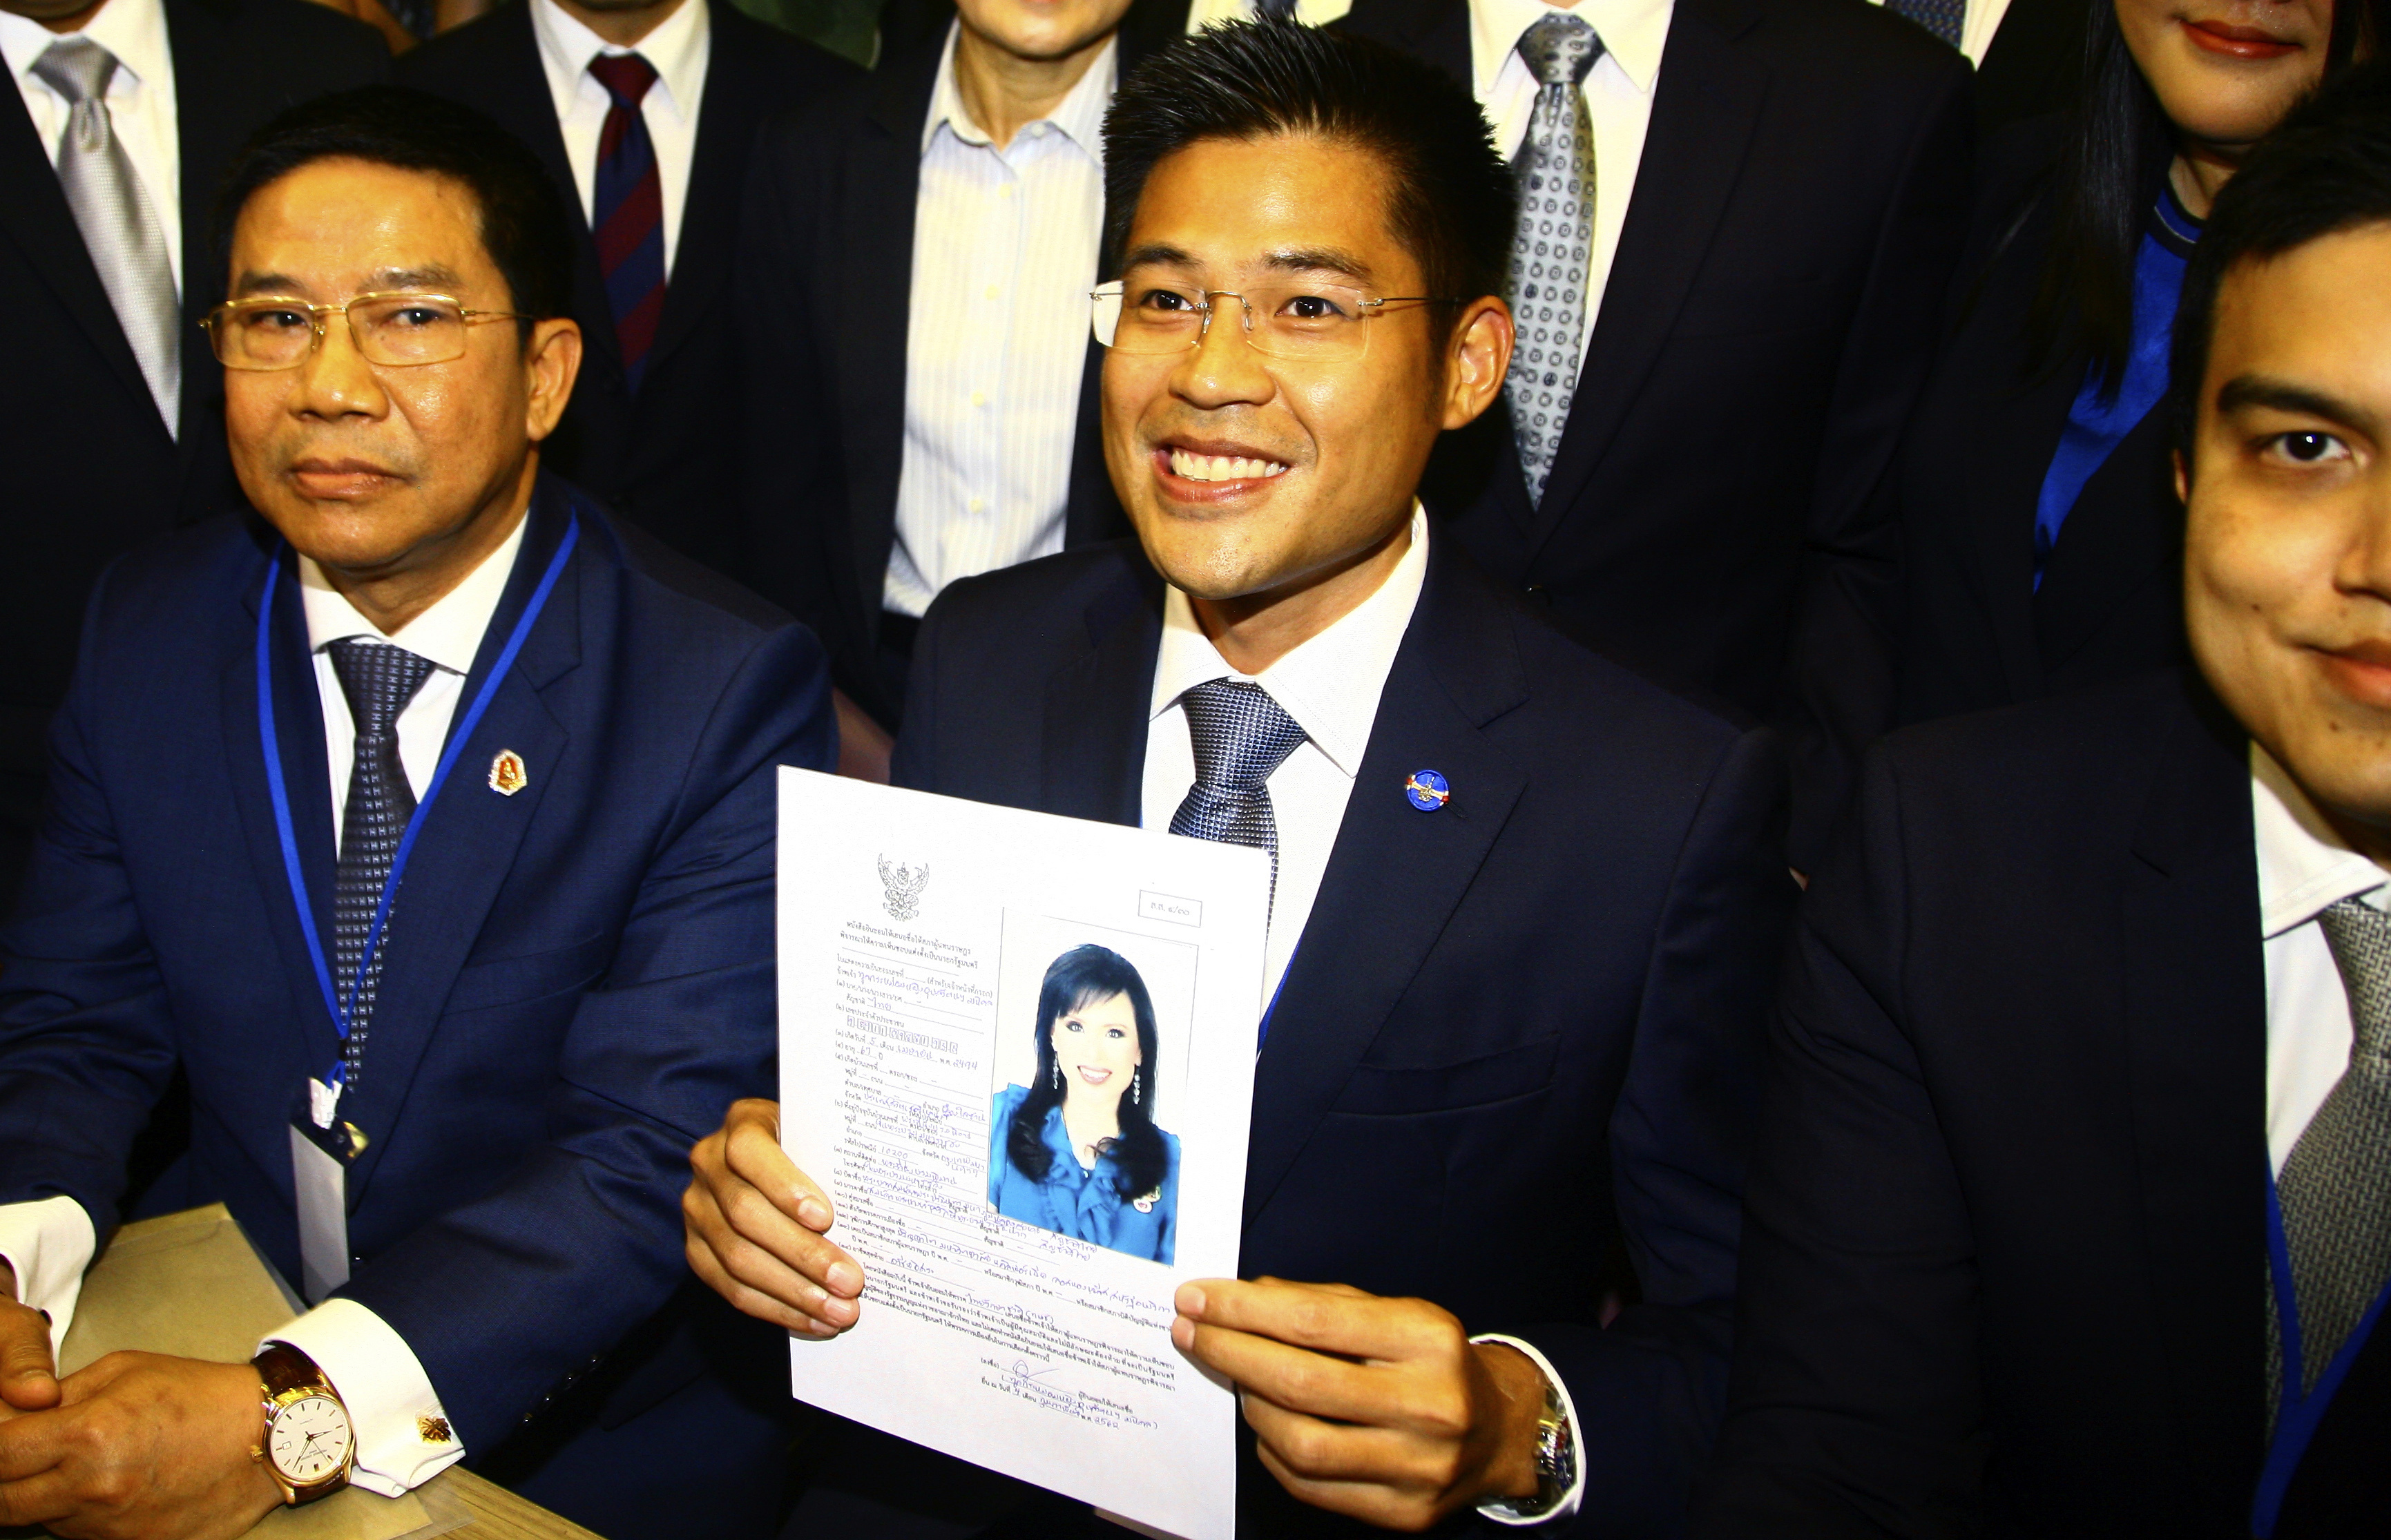 Leader of Thai Raksa Chart party Preecha Pholphongpanich, center, holds a picture of Princess Ubolratana at election commission of Thailand in Bangkok, Thailand, Friday, Feb. 8, 2019. The political party has selected the princess as its nominee to serve as the next prime minister, upending tradition that the royal palace plays no public role in politics and upsetting all predictions about what may happen in the March election. (AP Photo)